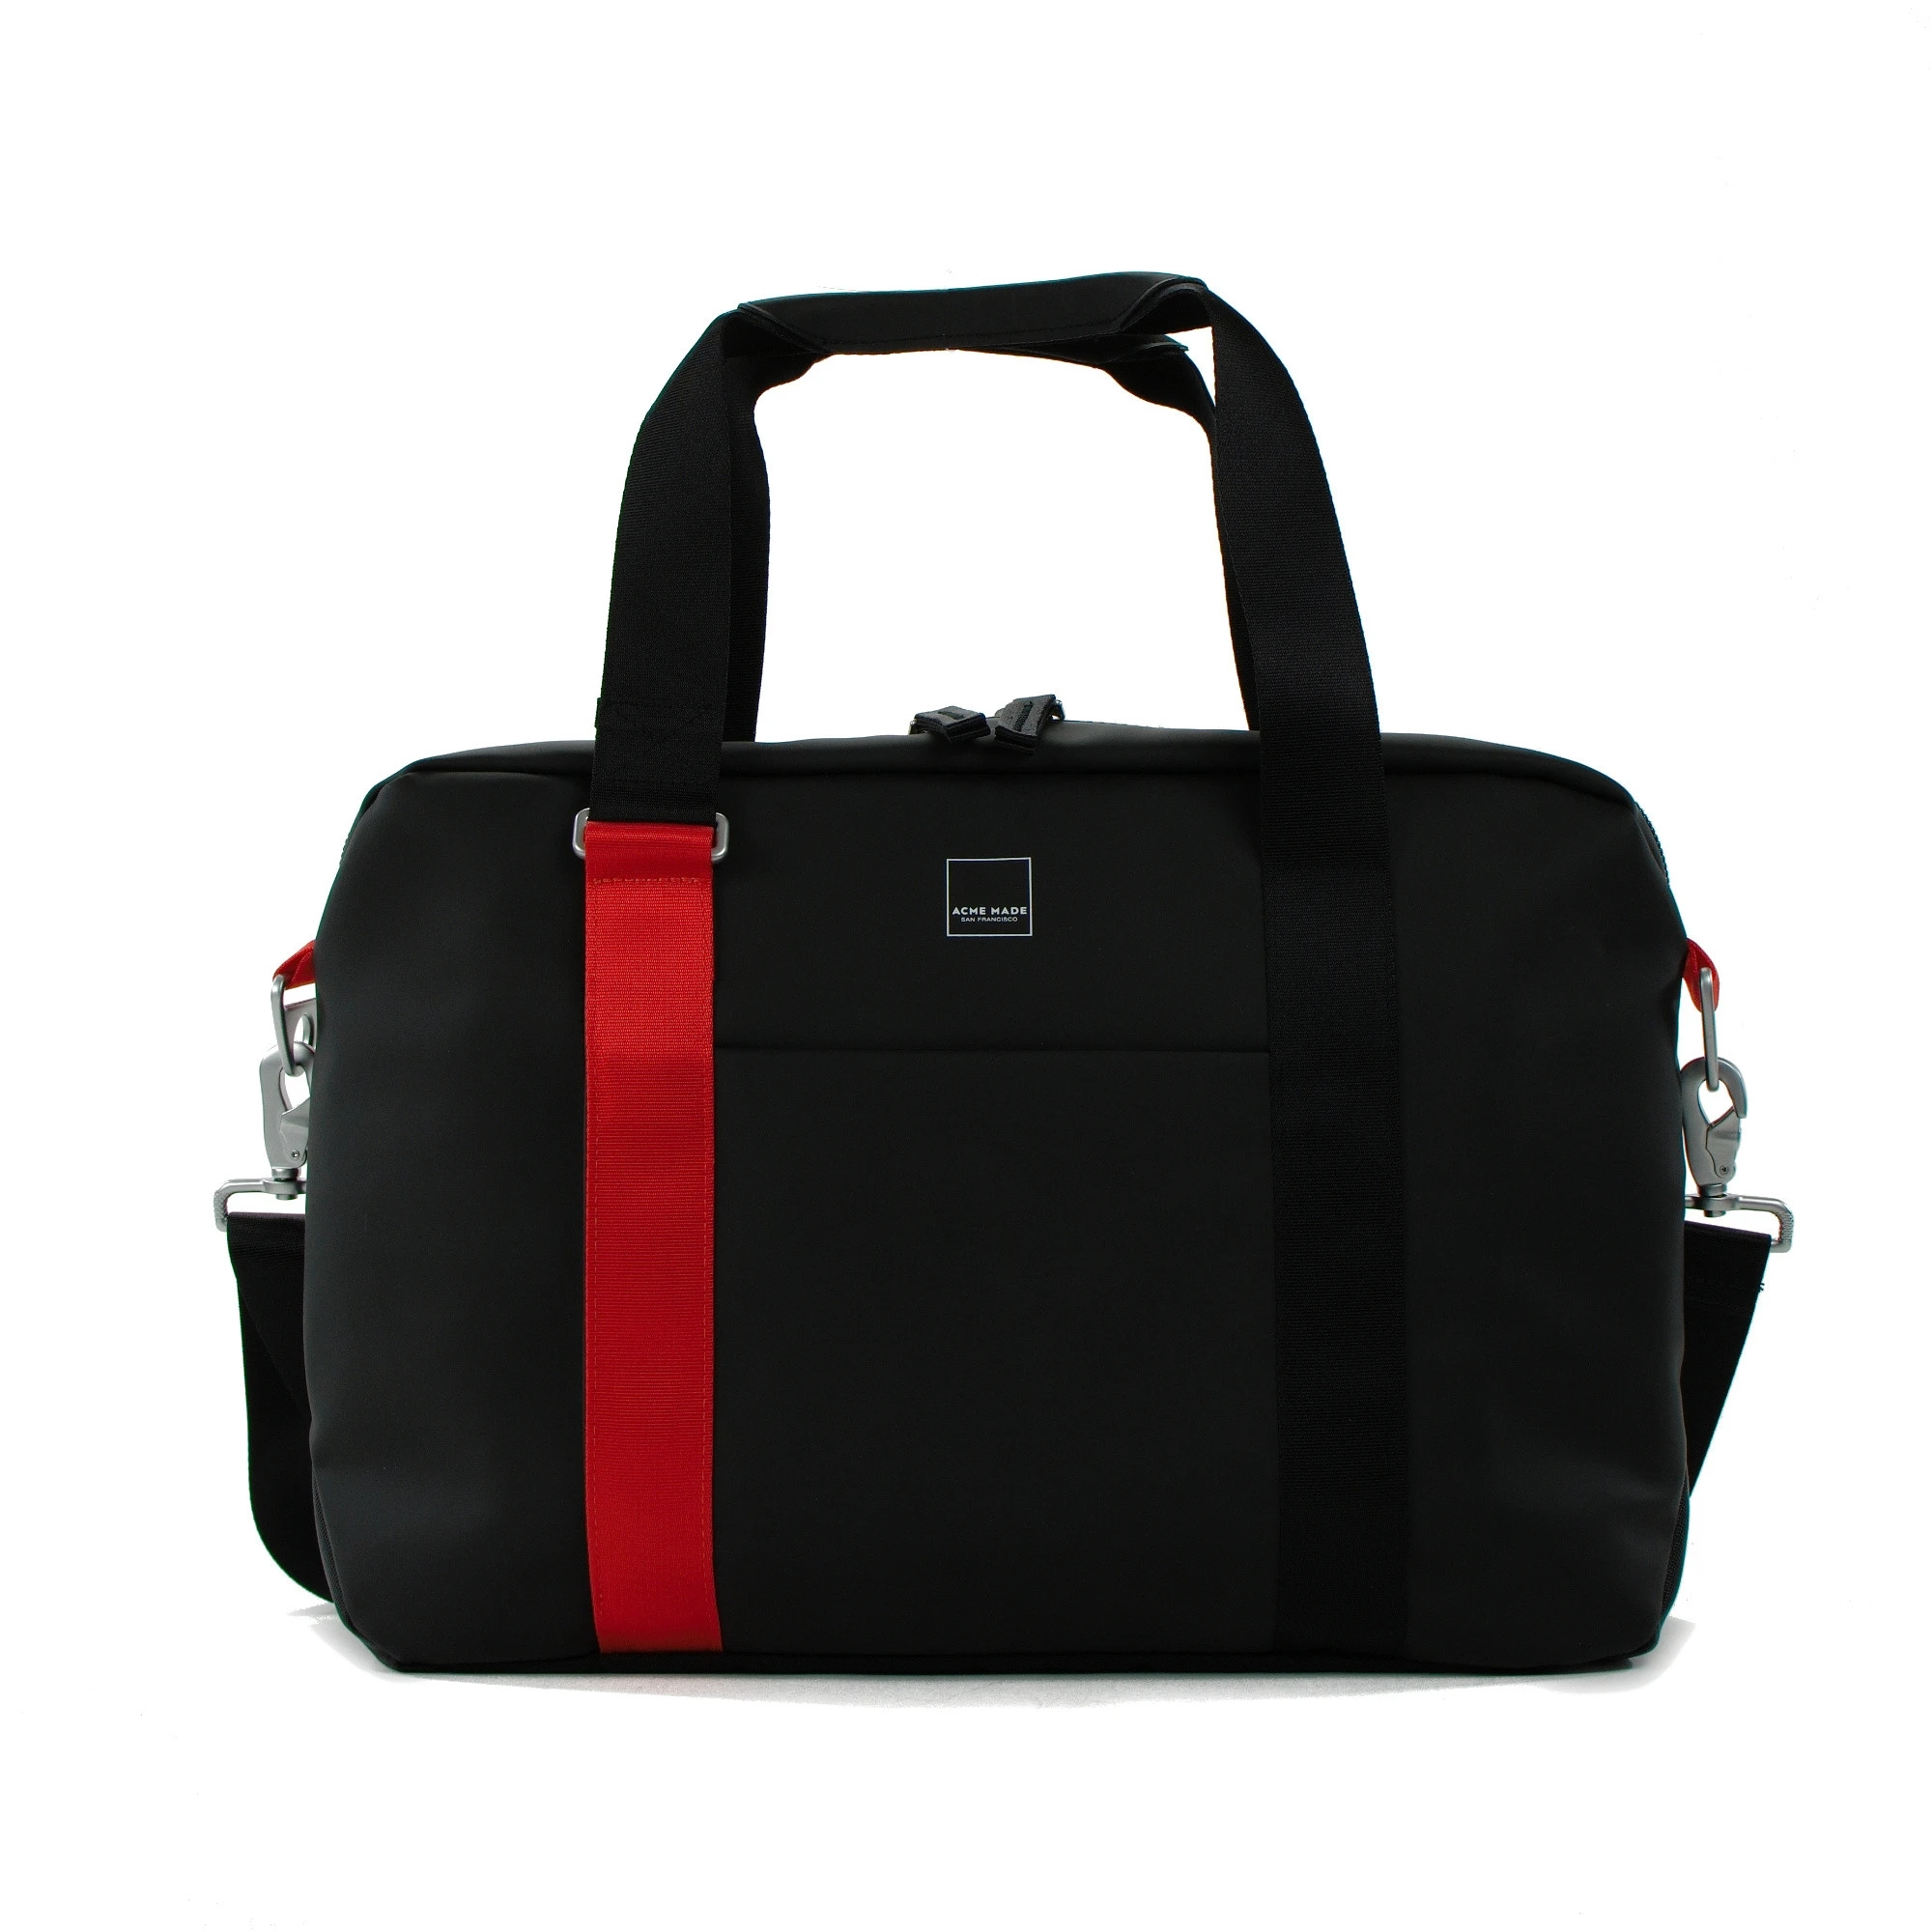 Acme Made North Point Attaché Messenger Bag